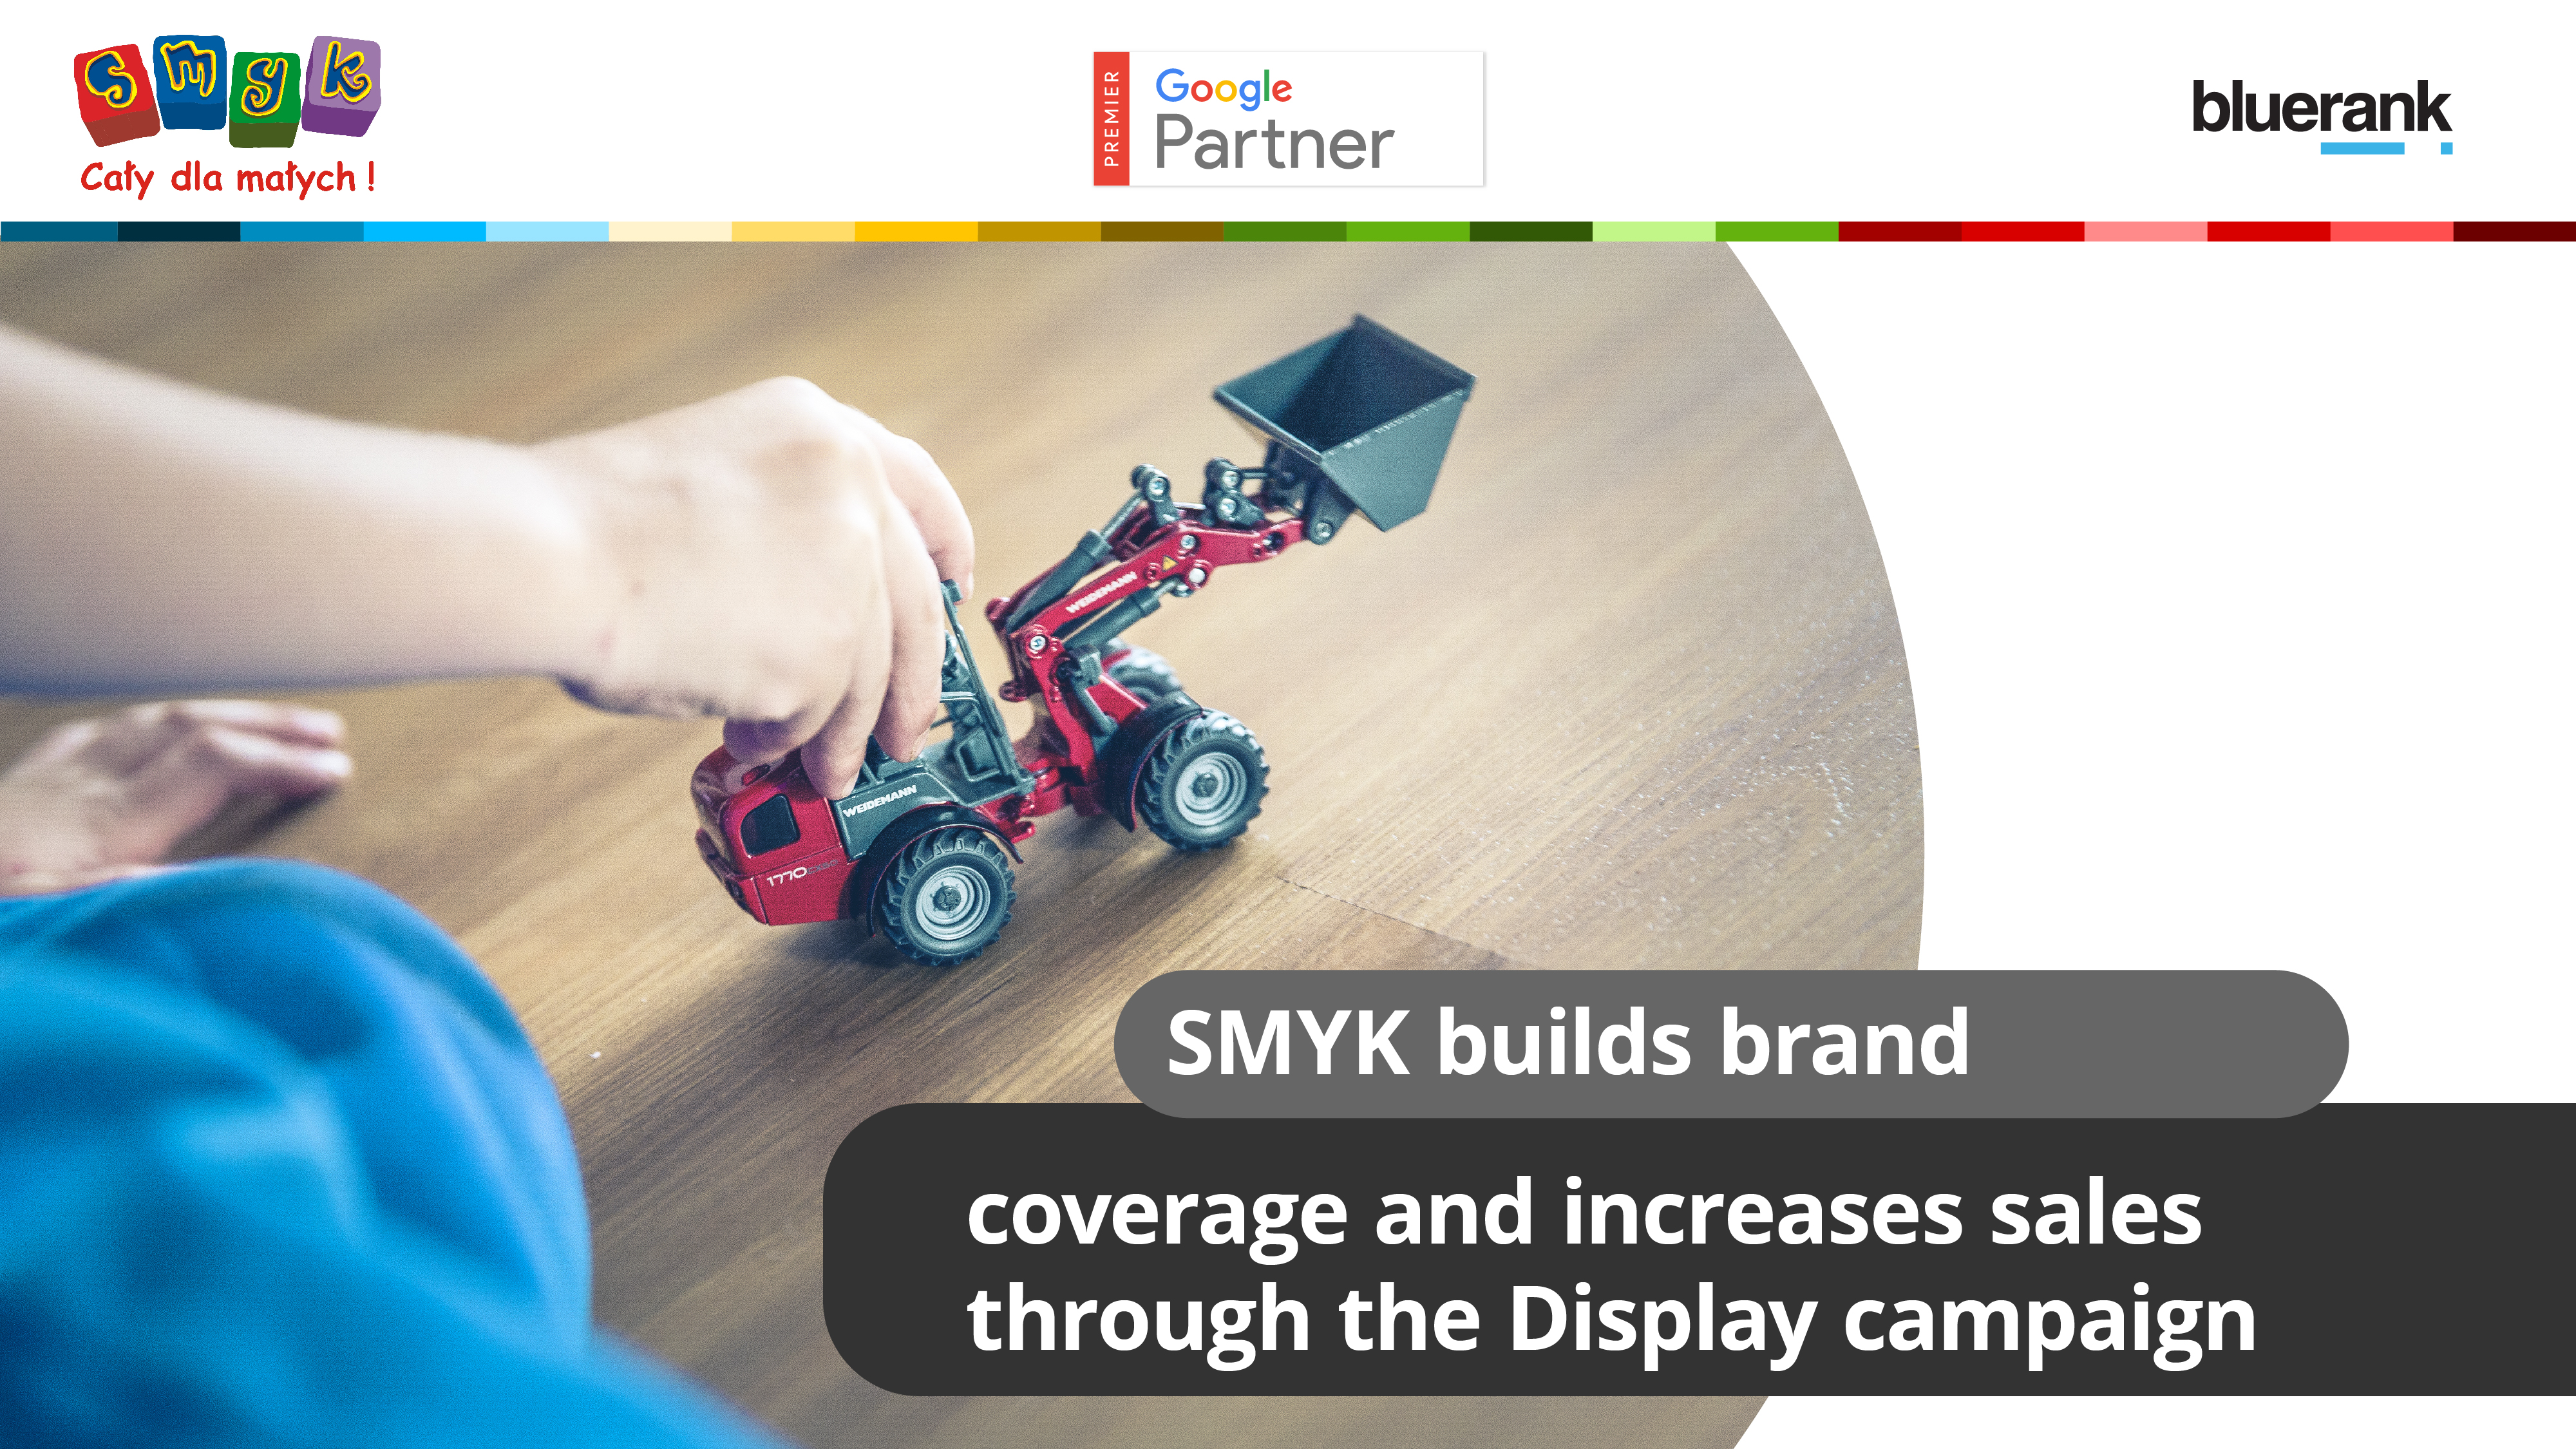 Smyk builds brand coverage and increases sales through the Display campaign